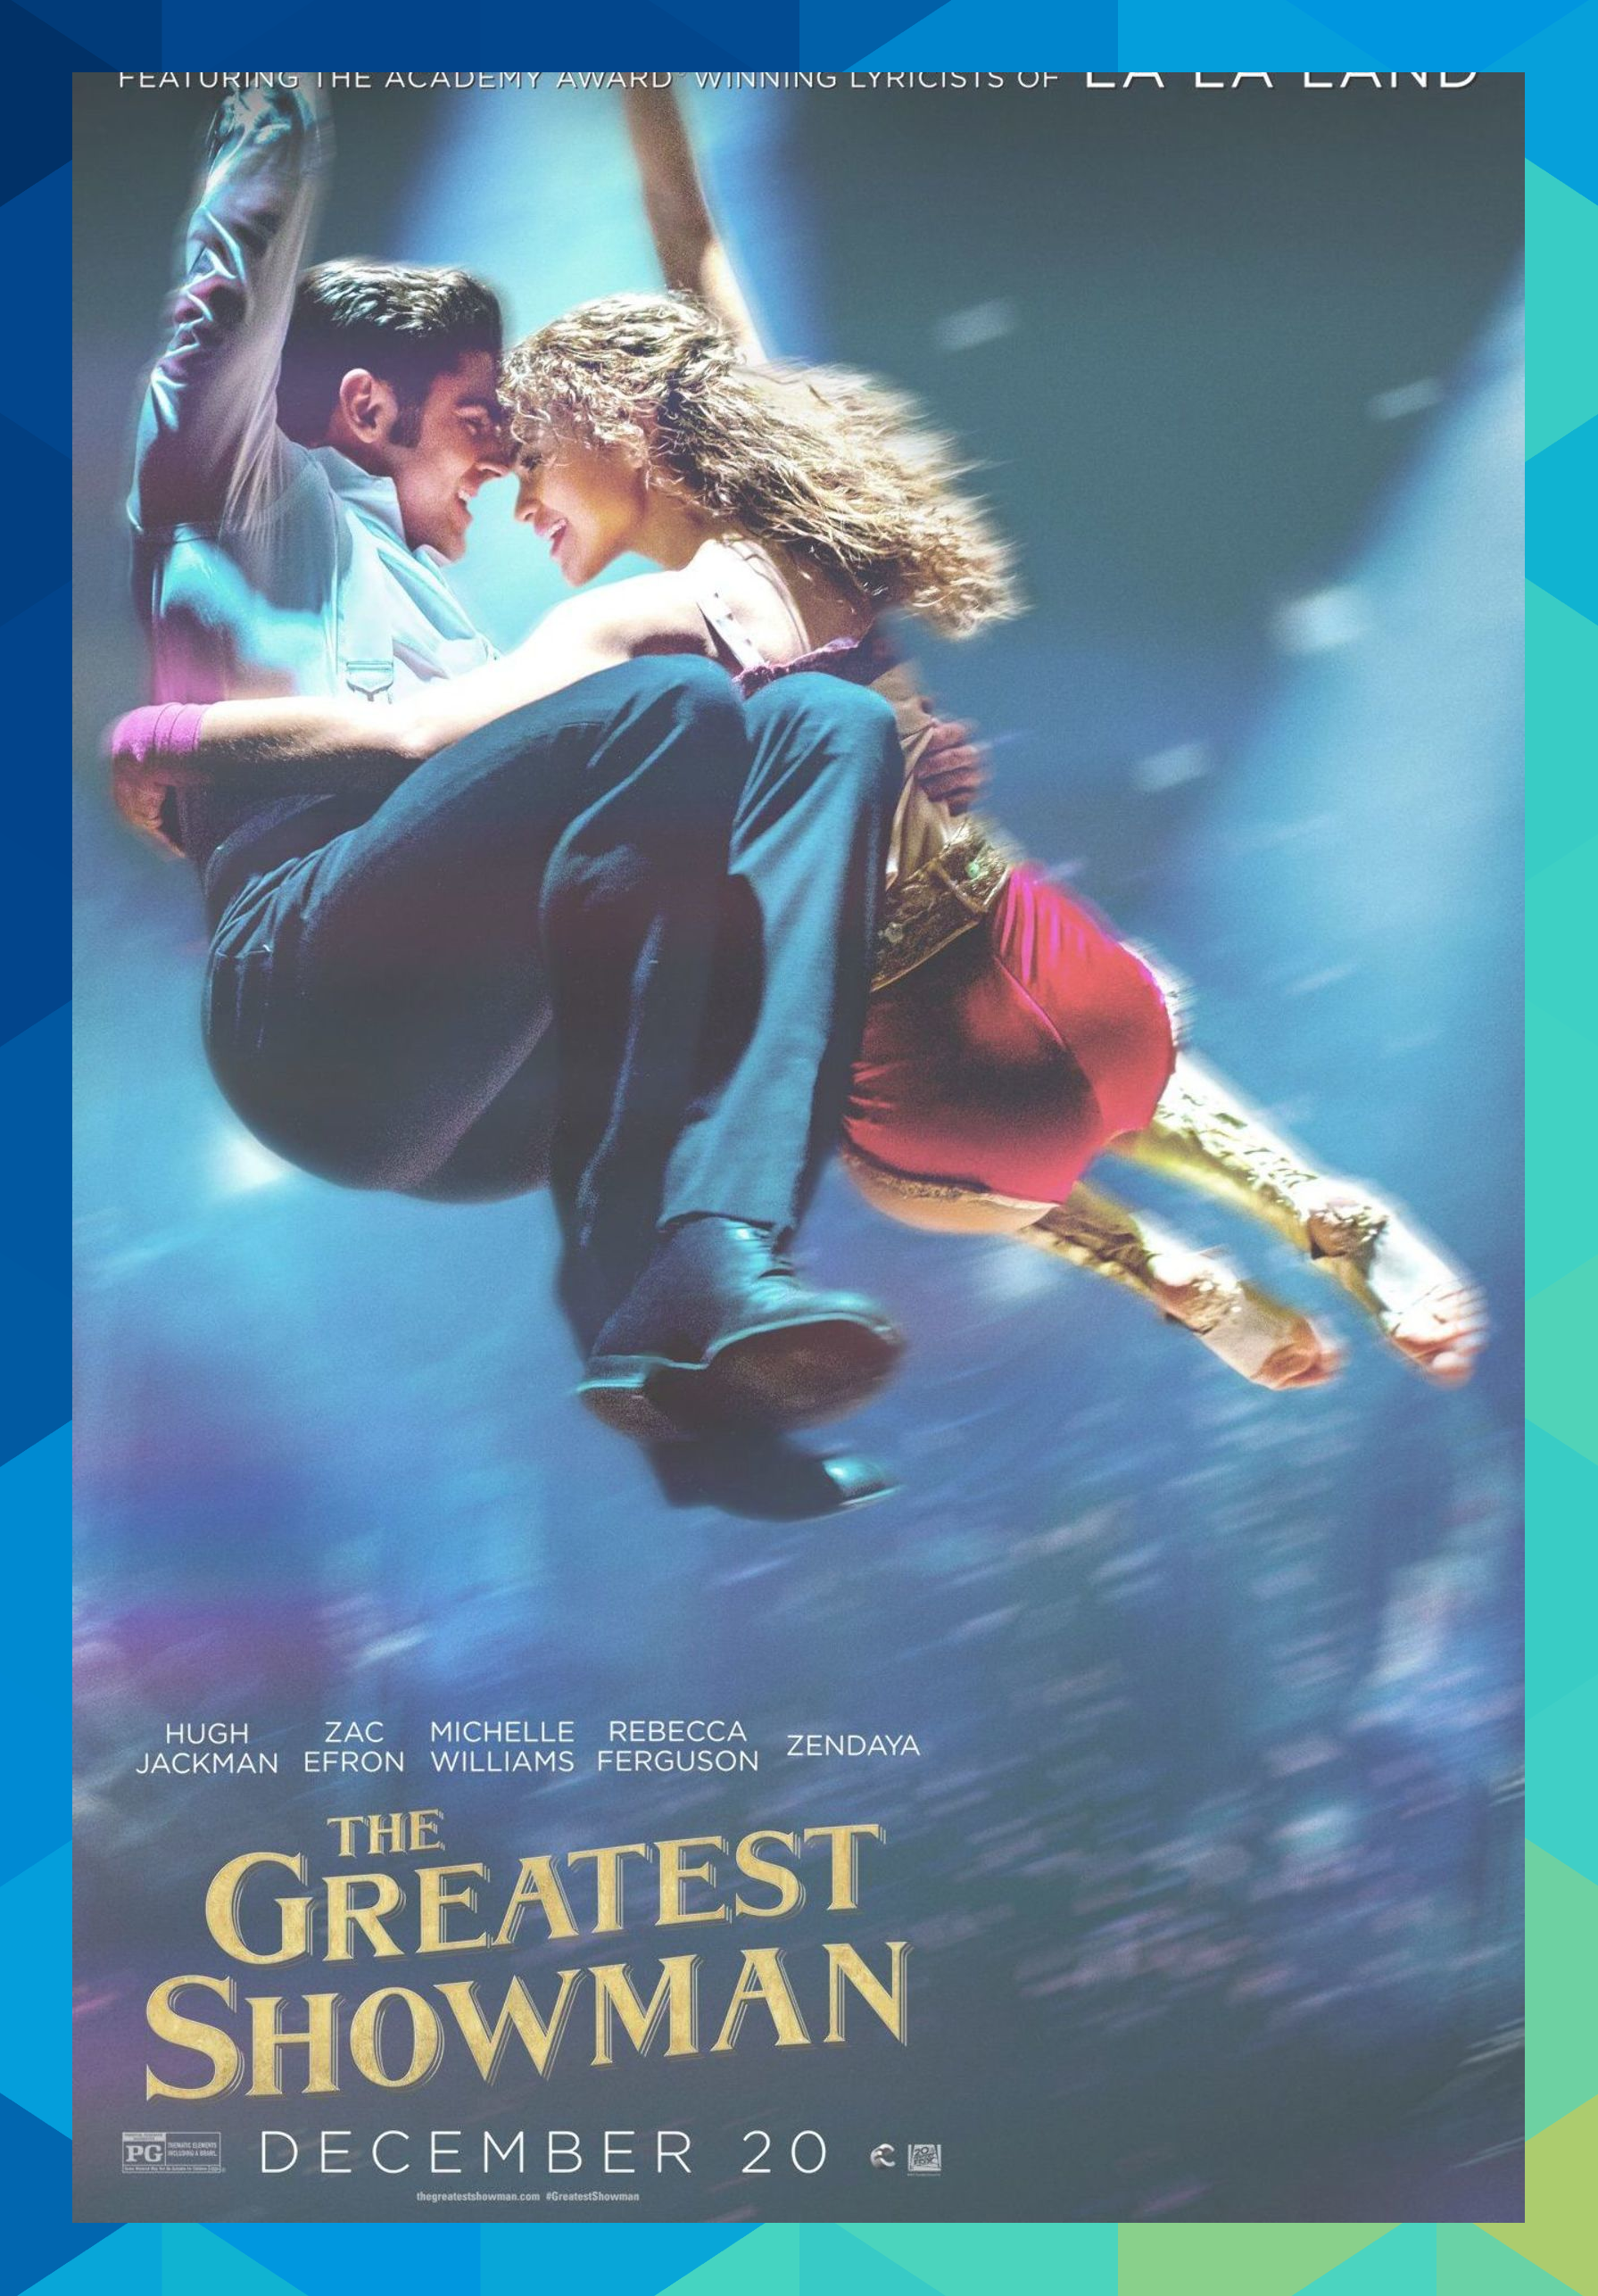 Step Right Up Check Out These Amazing Posters For The Greatest Showman Starring Hugh Jackman B The Greatest Showman Best Christmas Movies Zac Efron Movies